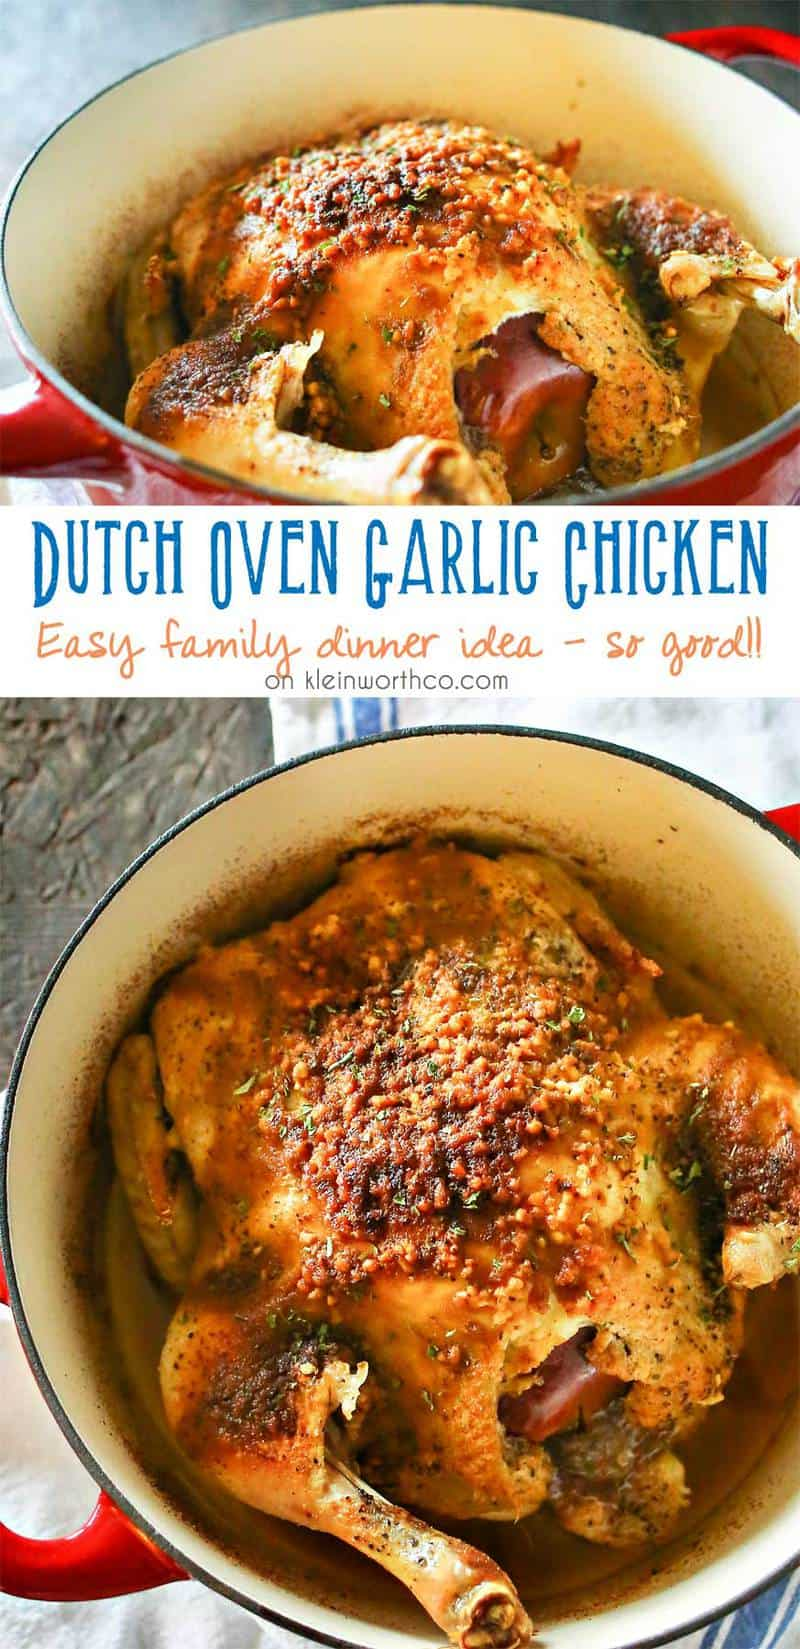 These 25 Dutch Oven Recipes are THE BEST! I'm so glad I found these AMAZING simple skillet recipes! Now whether camping or needing a recipe for a summer night I have this list to come back to. Pin this for later! #camping #skillet #dinner #campfire #onepot #castiron #healthy #dessert #chicken #beef